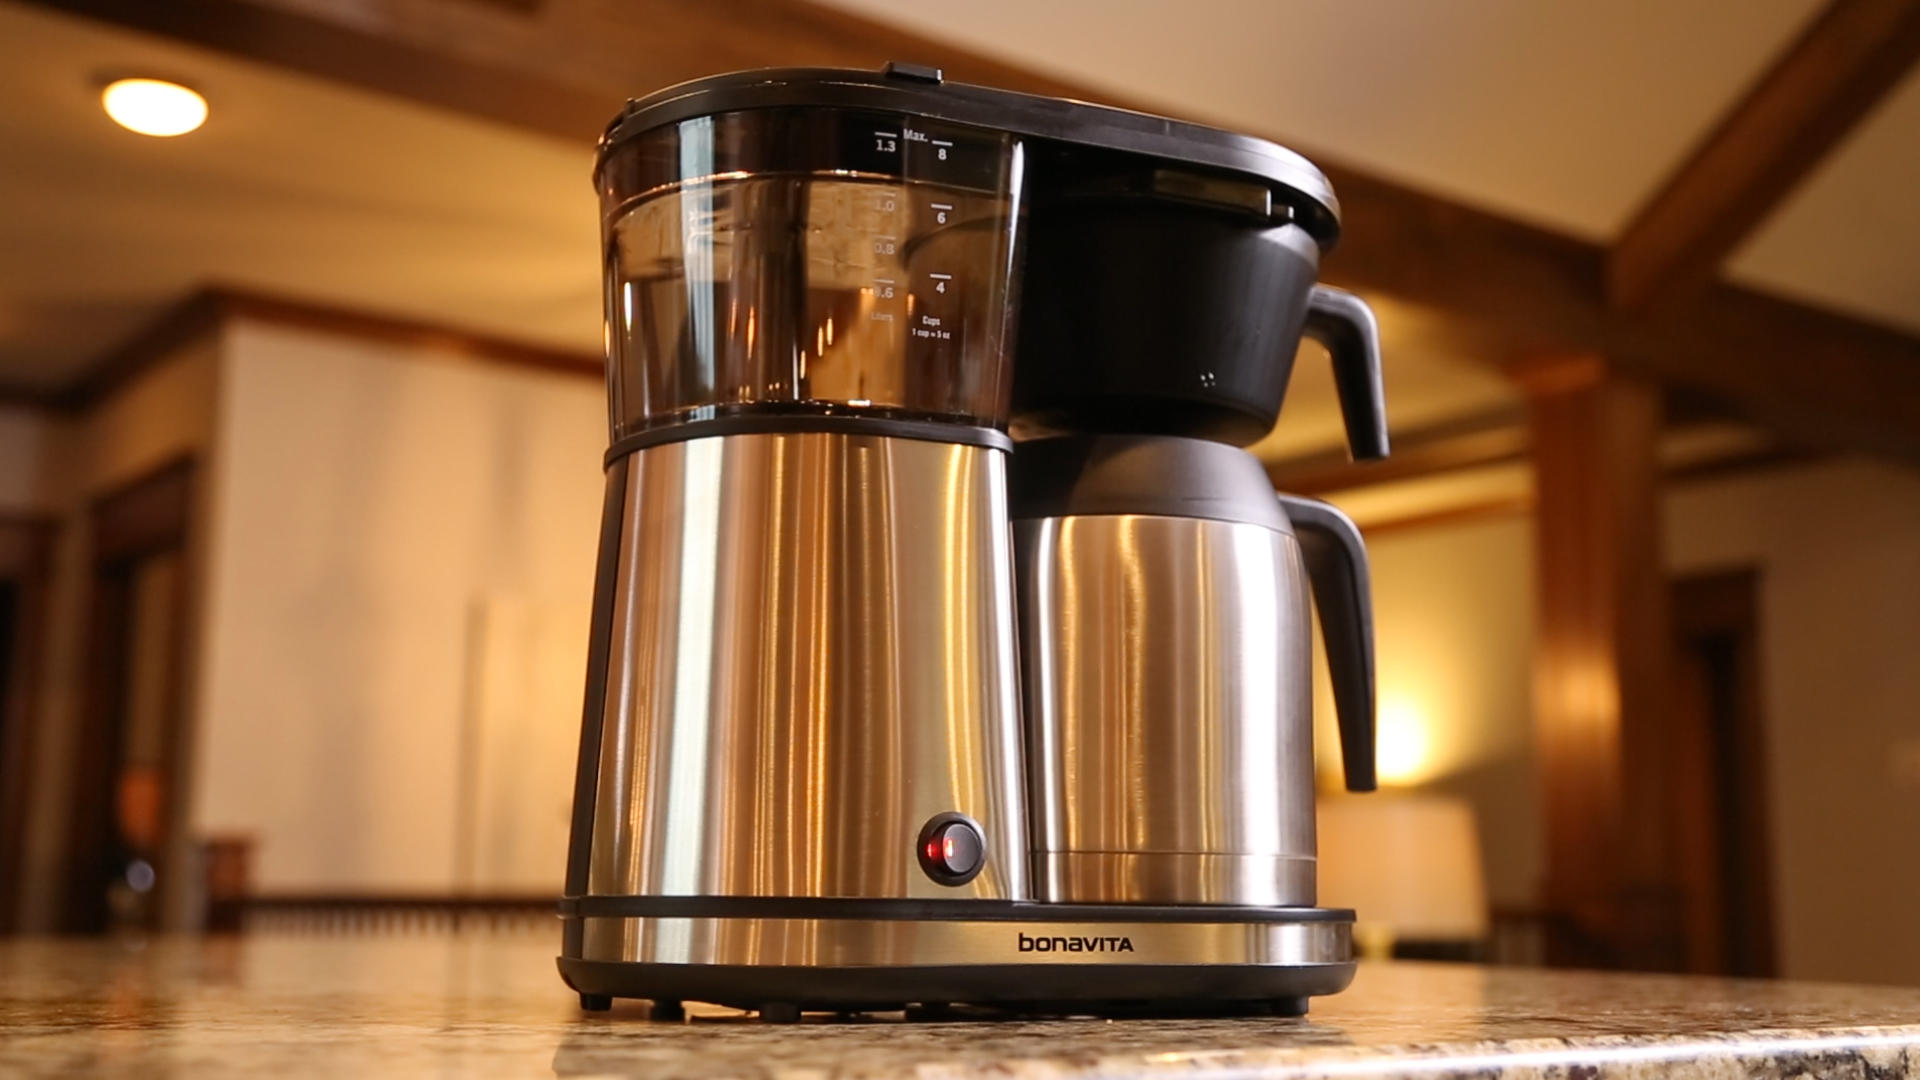 Video: The Connoisseur is Bonavita's best coffee maker ever